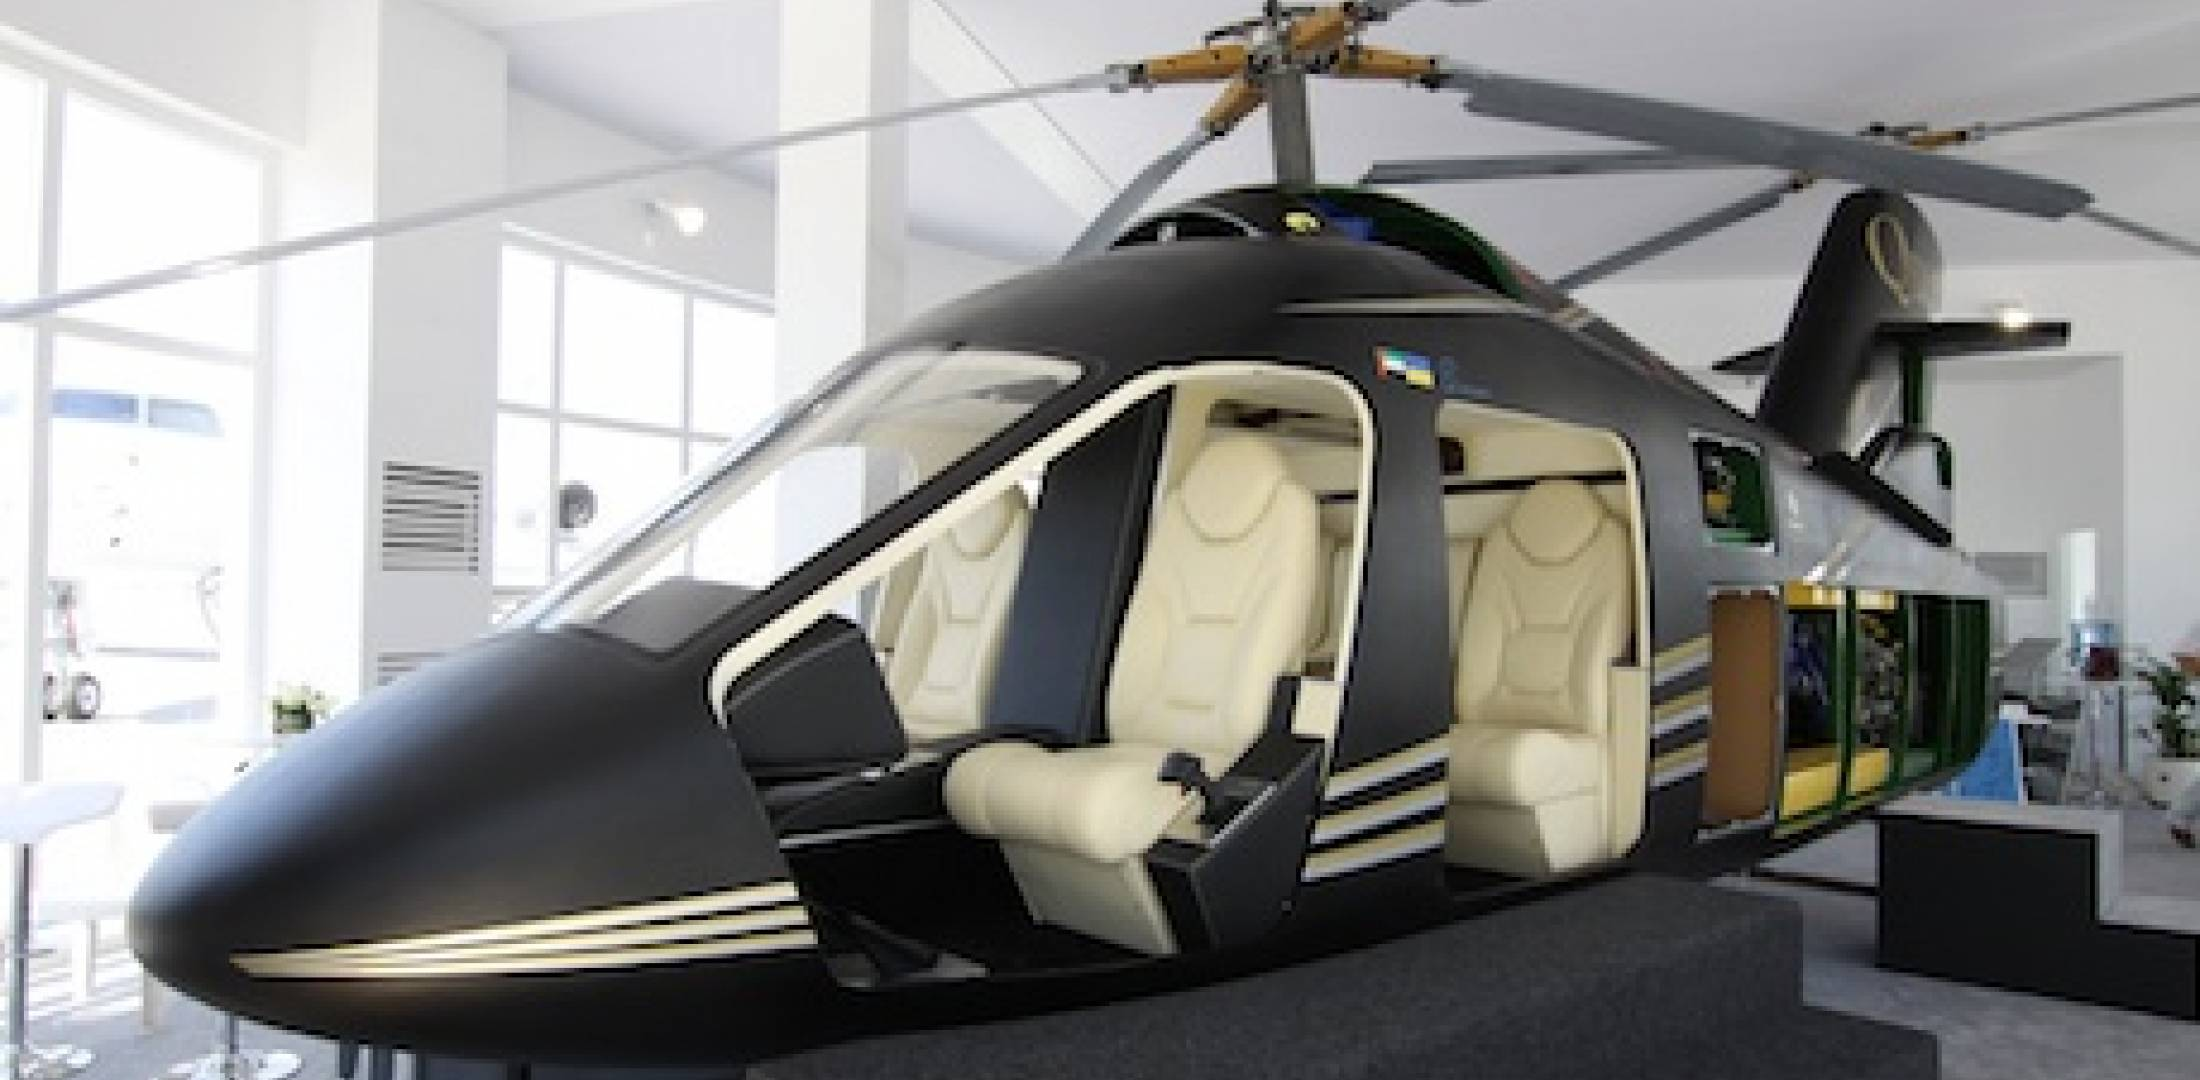 UAE-based Quest Helicopters launched the light twin AVQ at the Dubai Air Show. I